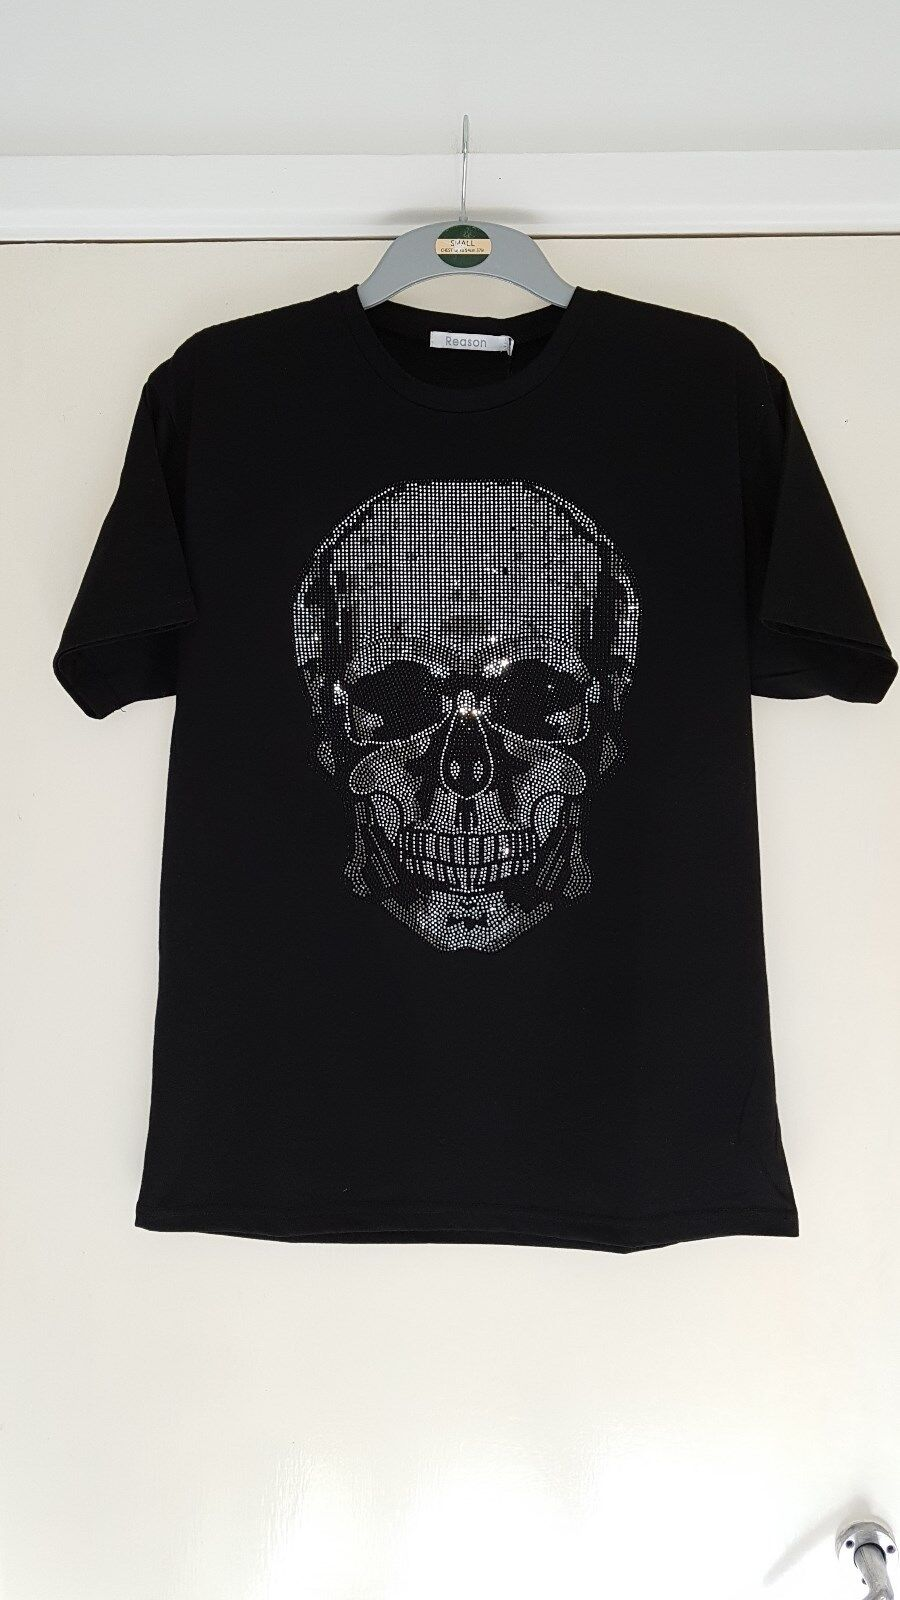 REASON, MEN'S STUDDED SKULL DESIGN T SHIRT, BRAND NEW WITH TAGS, SIZE M,